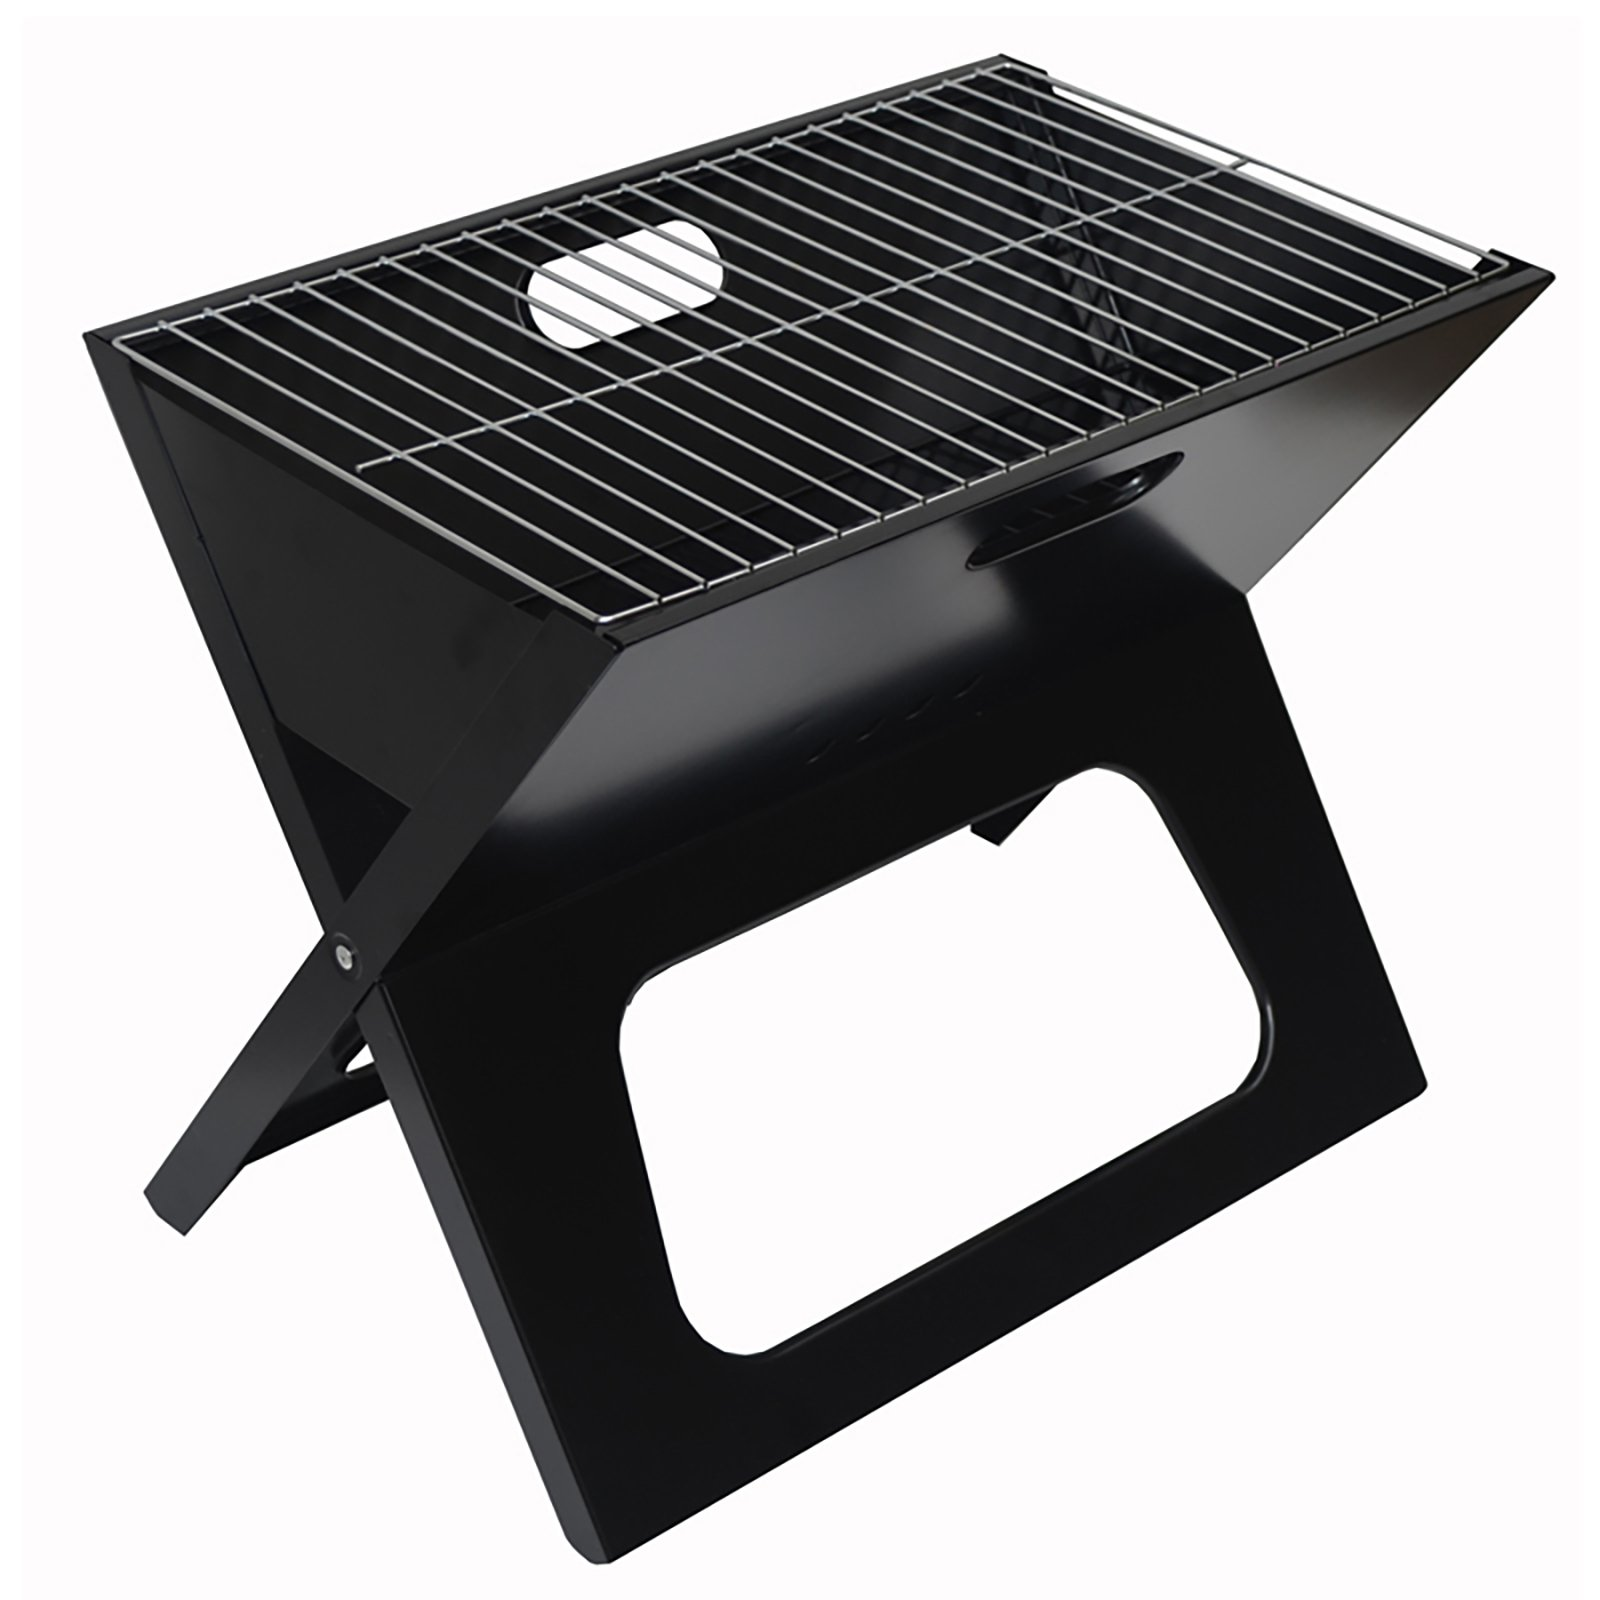 Picnic at Ascot B025 Folding Portable BBQ Grill with Carrier